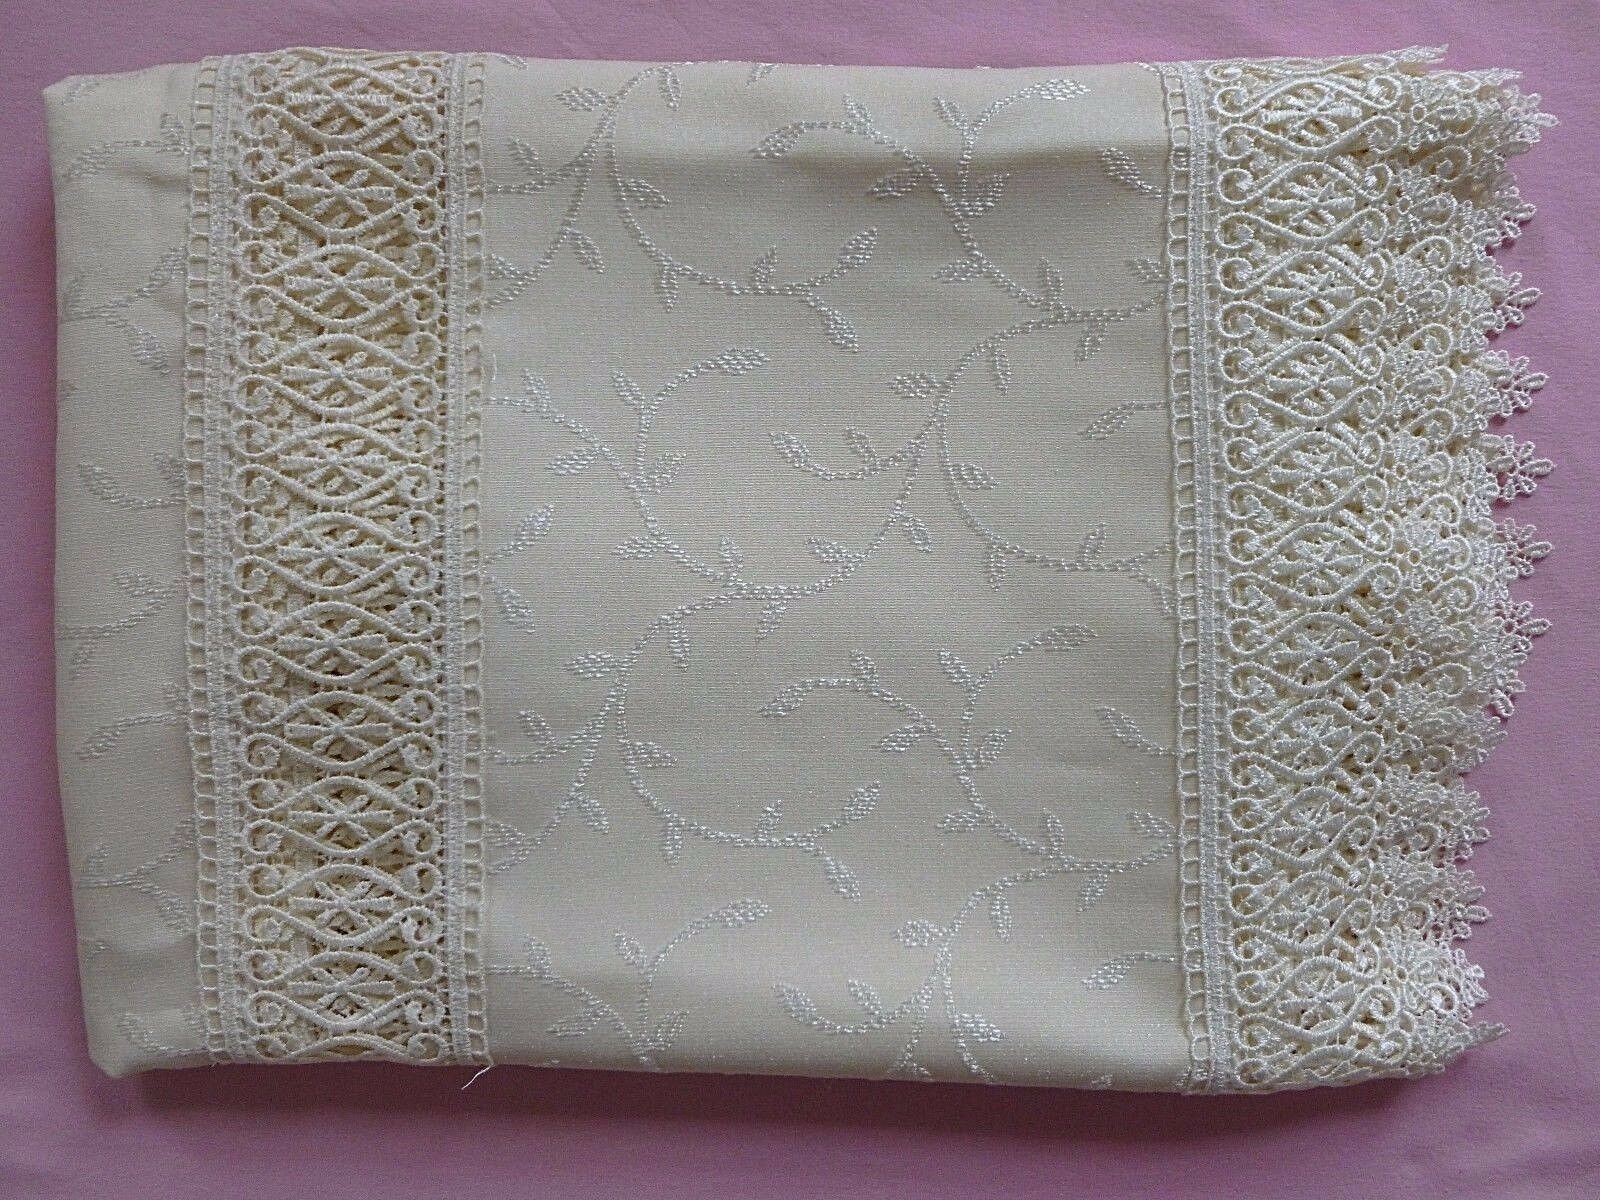 NEW TABE TROPIK LUXURY TABLECLOTH WIDE LACE INSERTS 160X220 CM 63 X86'' Cream